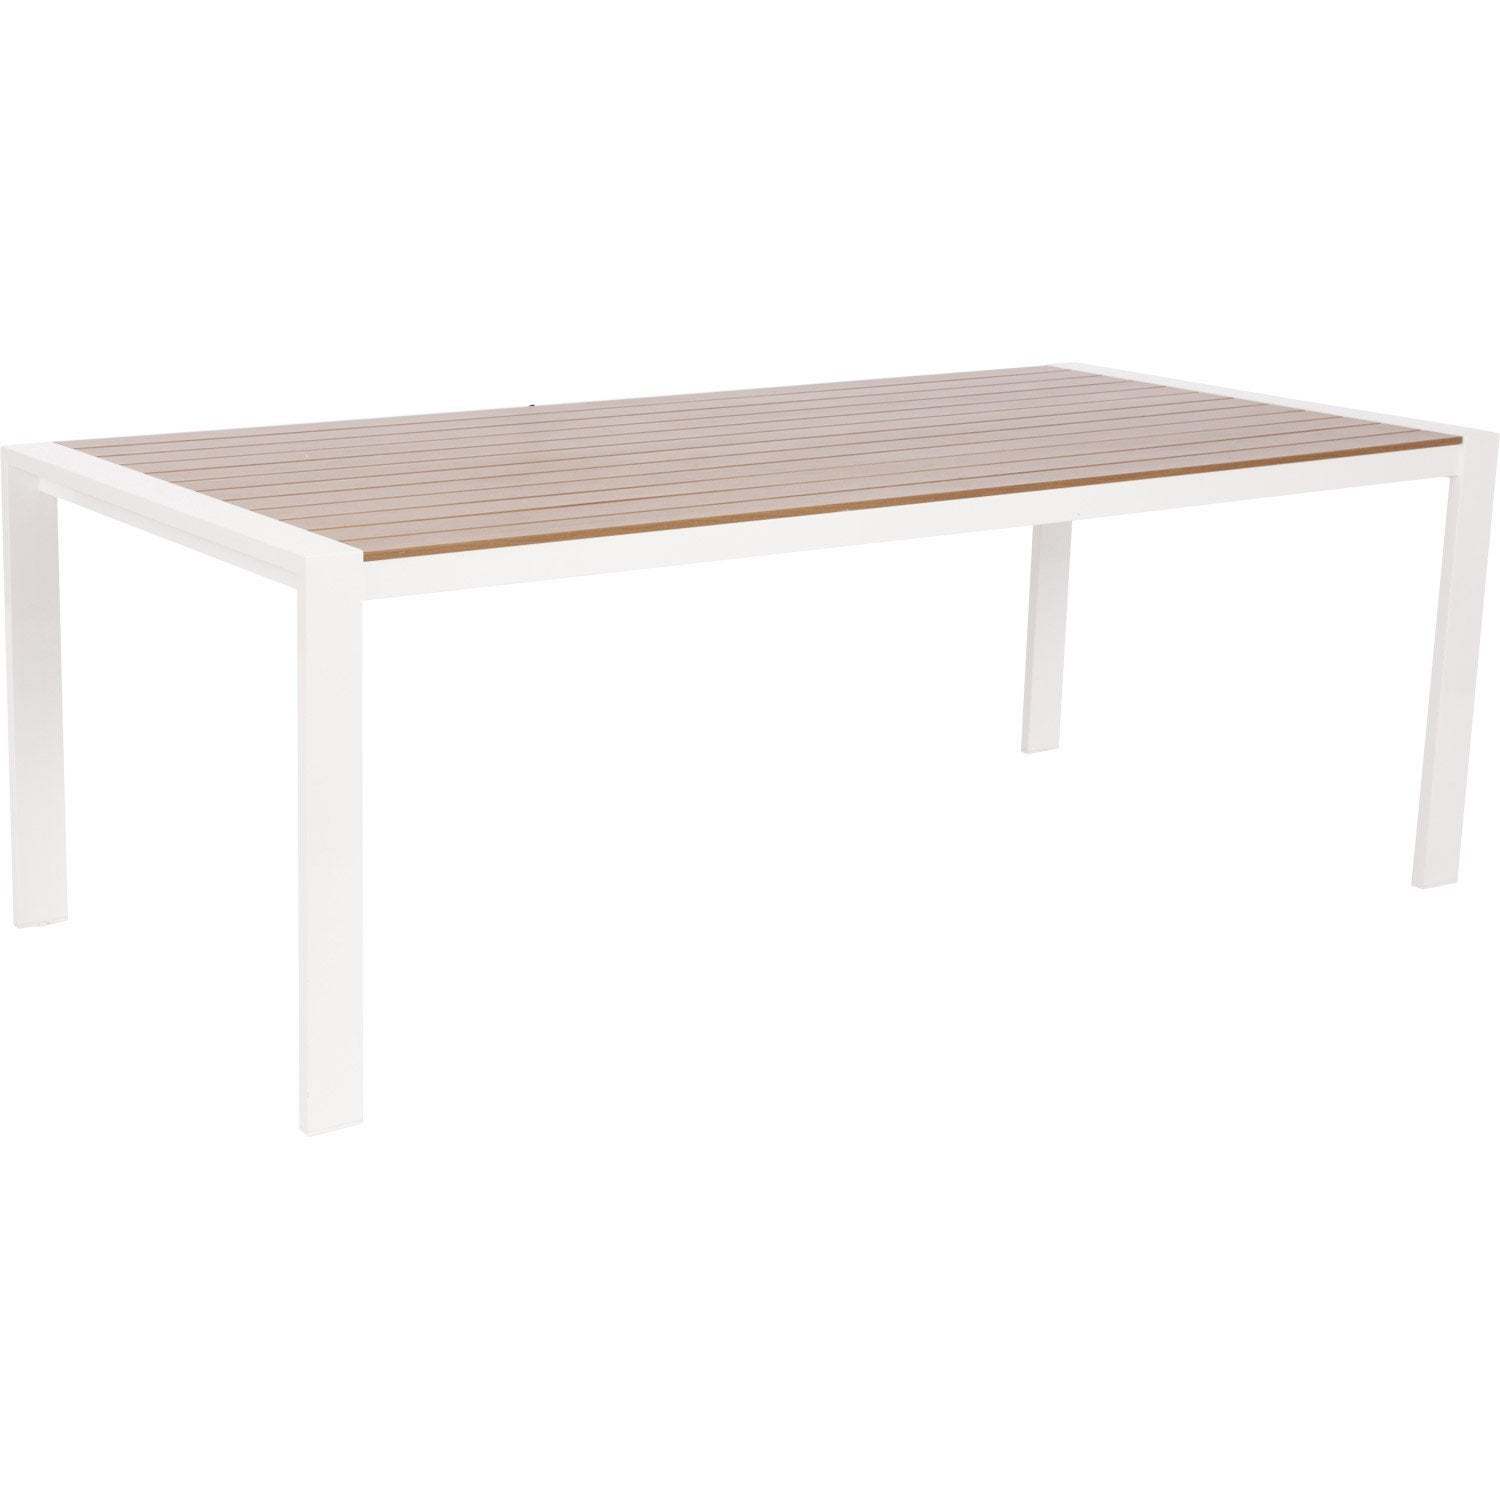 Table de jardin Port nelson rectangulaire blanc / imitation teck 8 ...